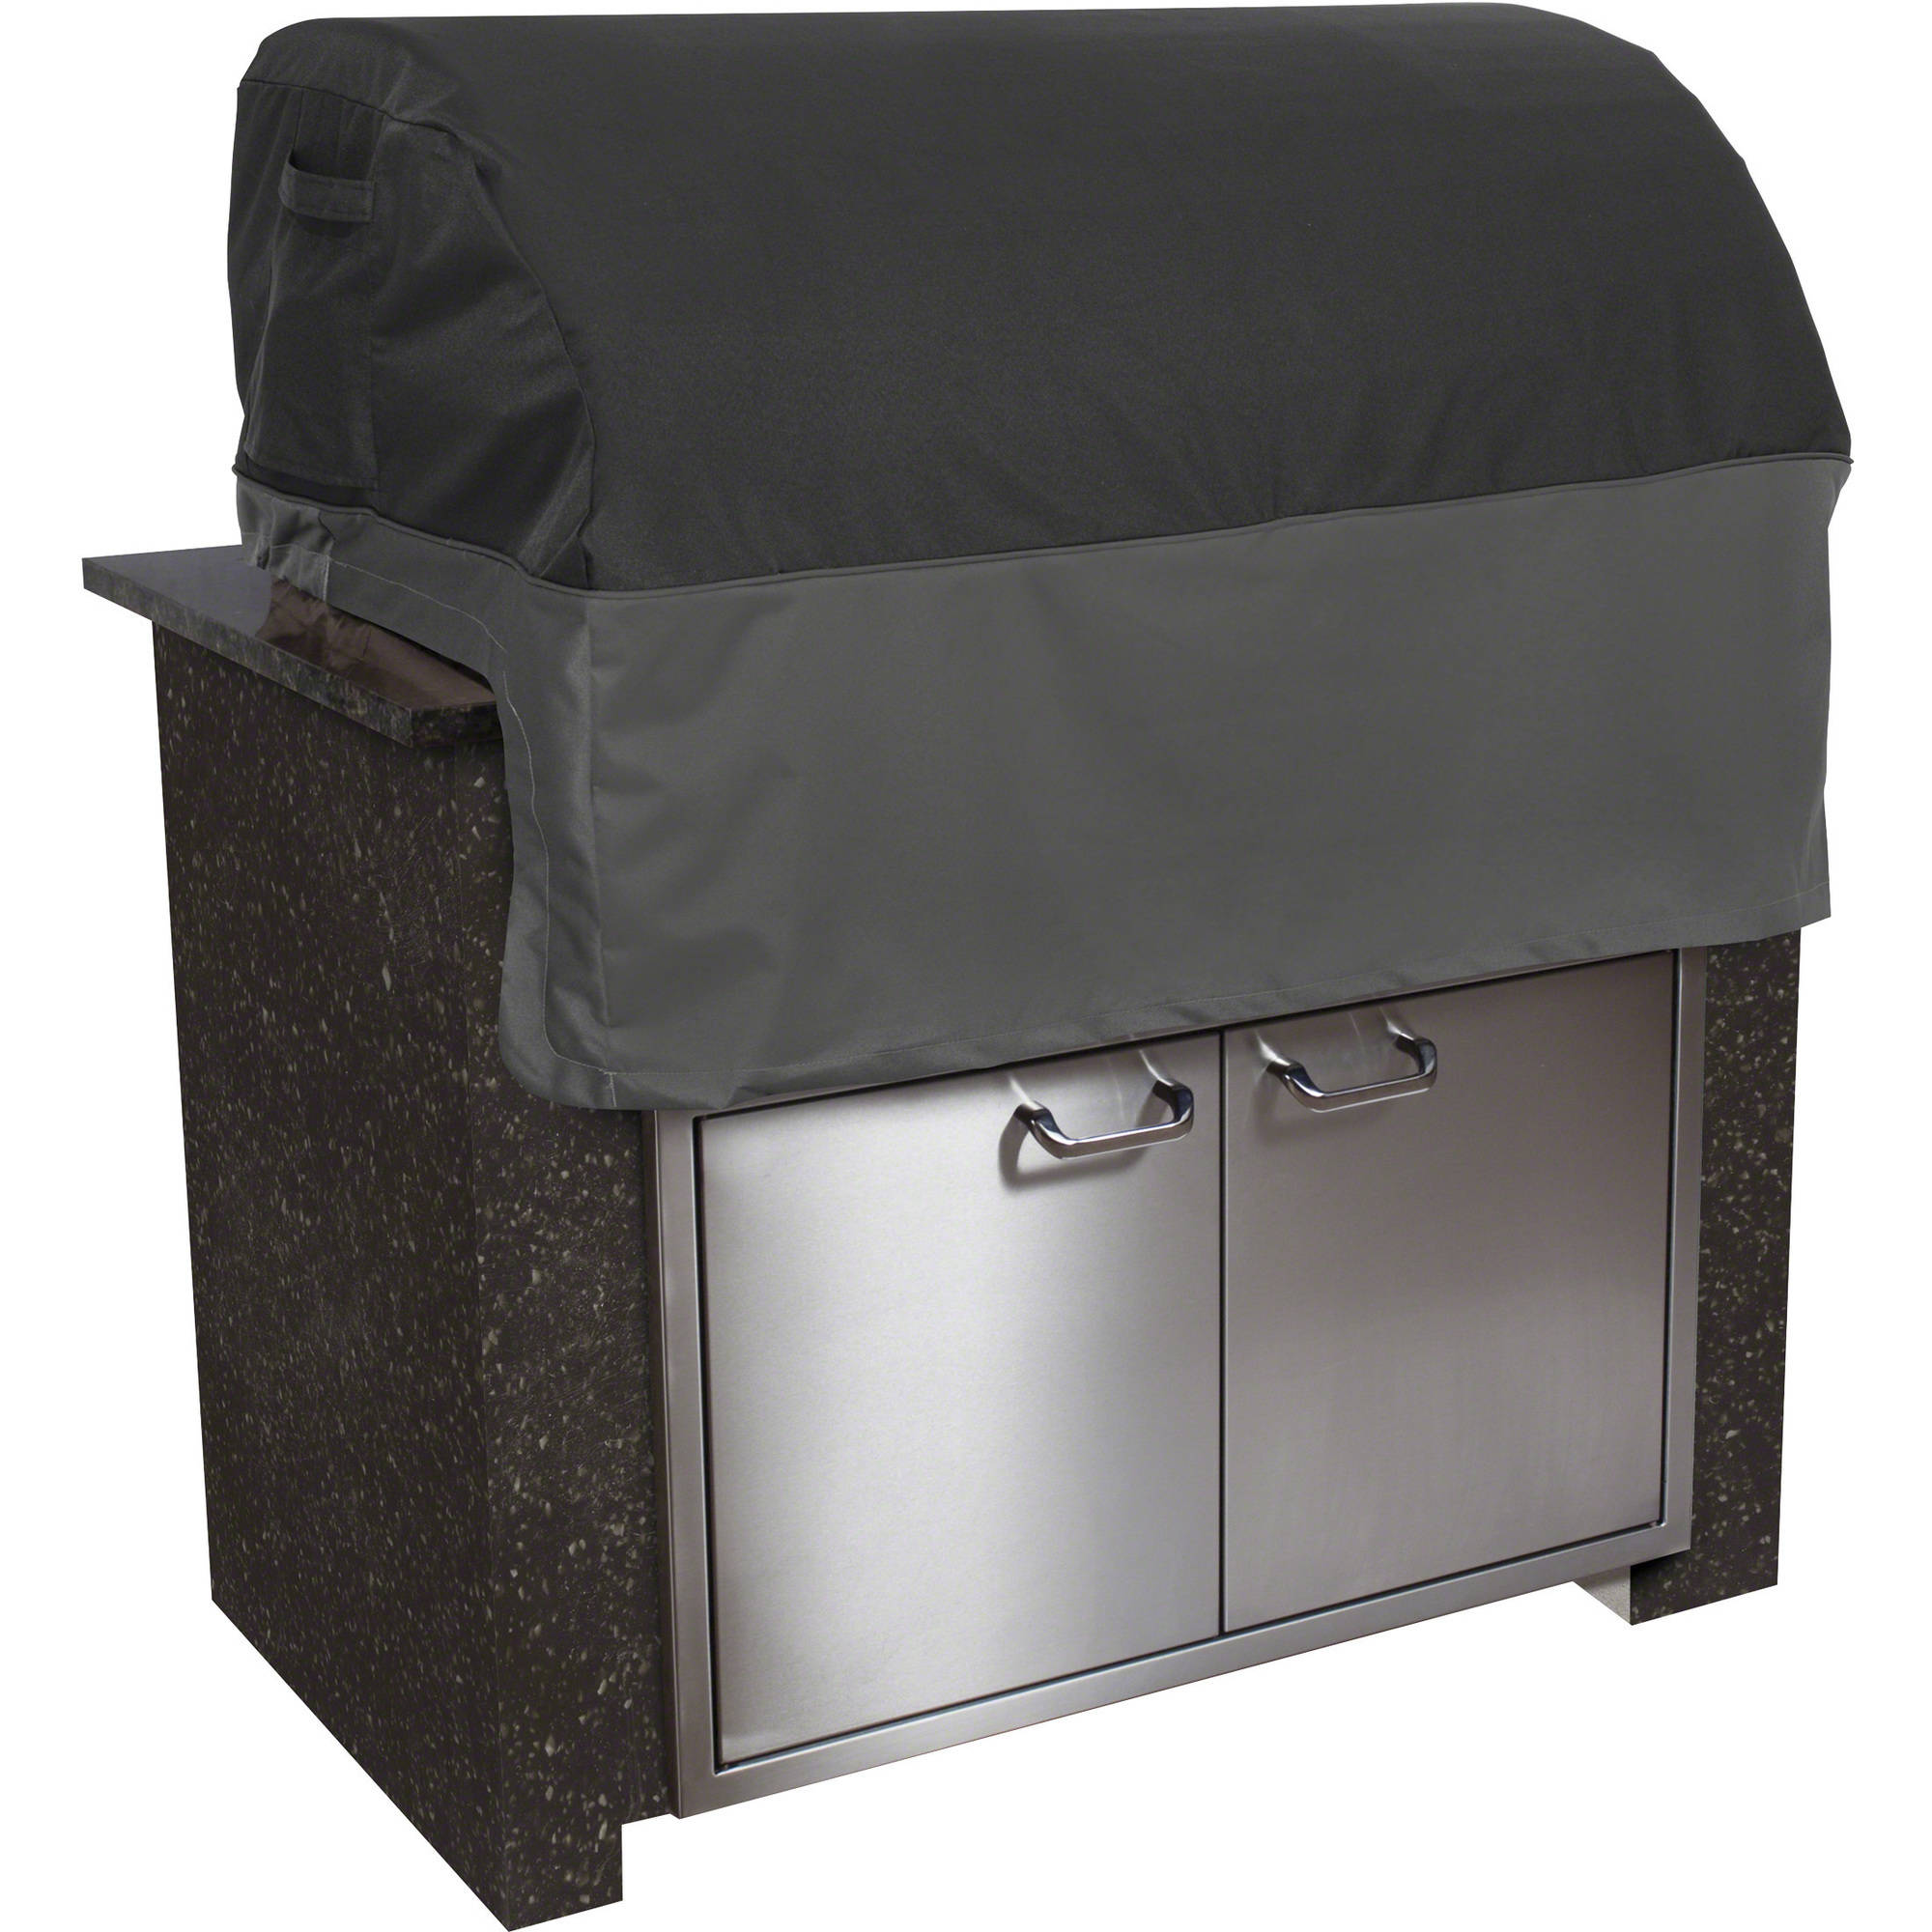 Classic Accessories Veranda FadeSafe Patio Built-In BBQ Grill Top Cover